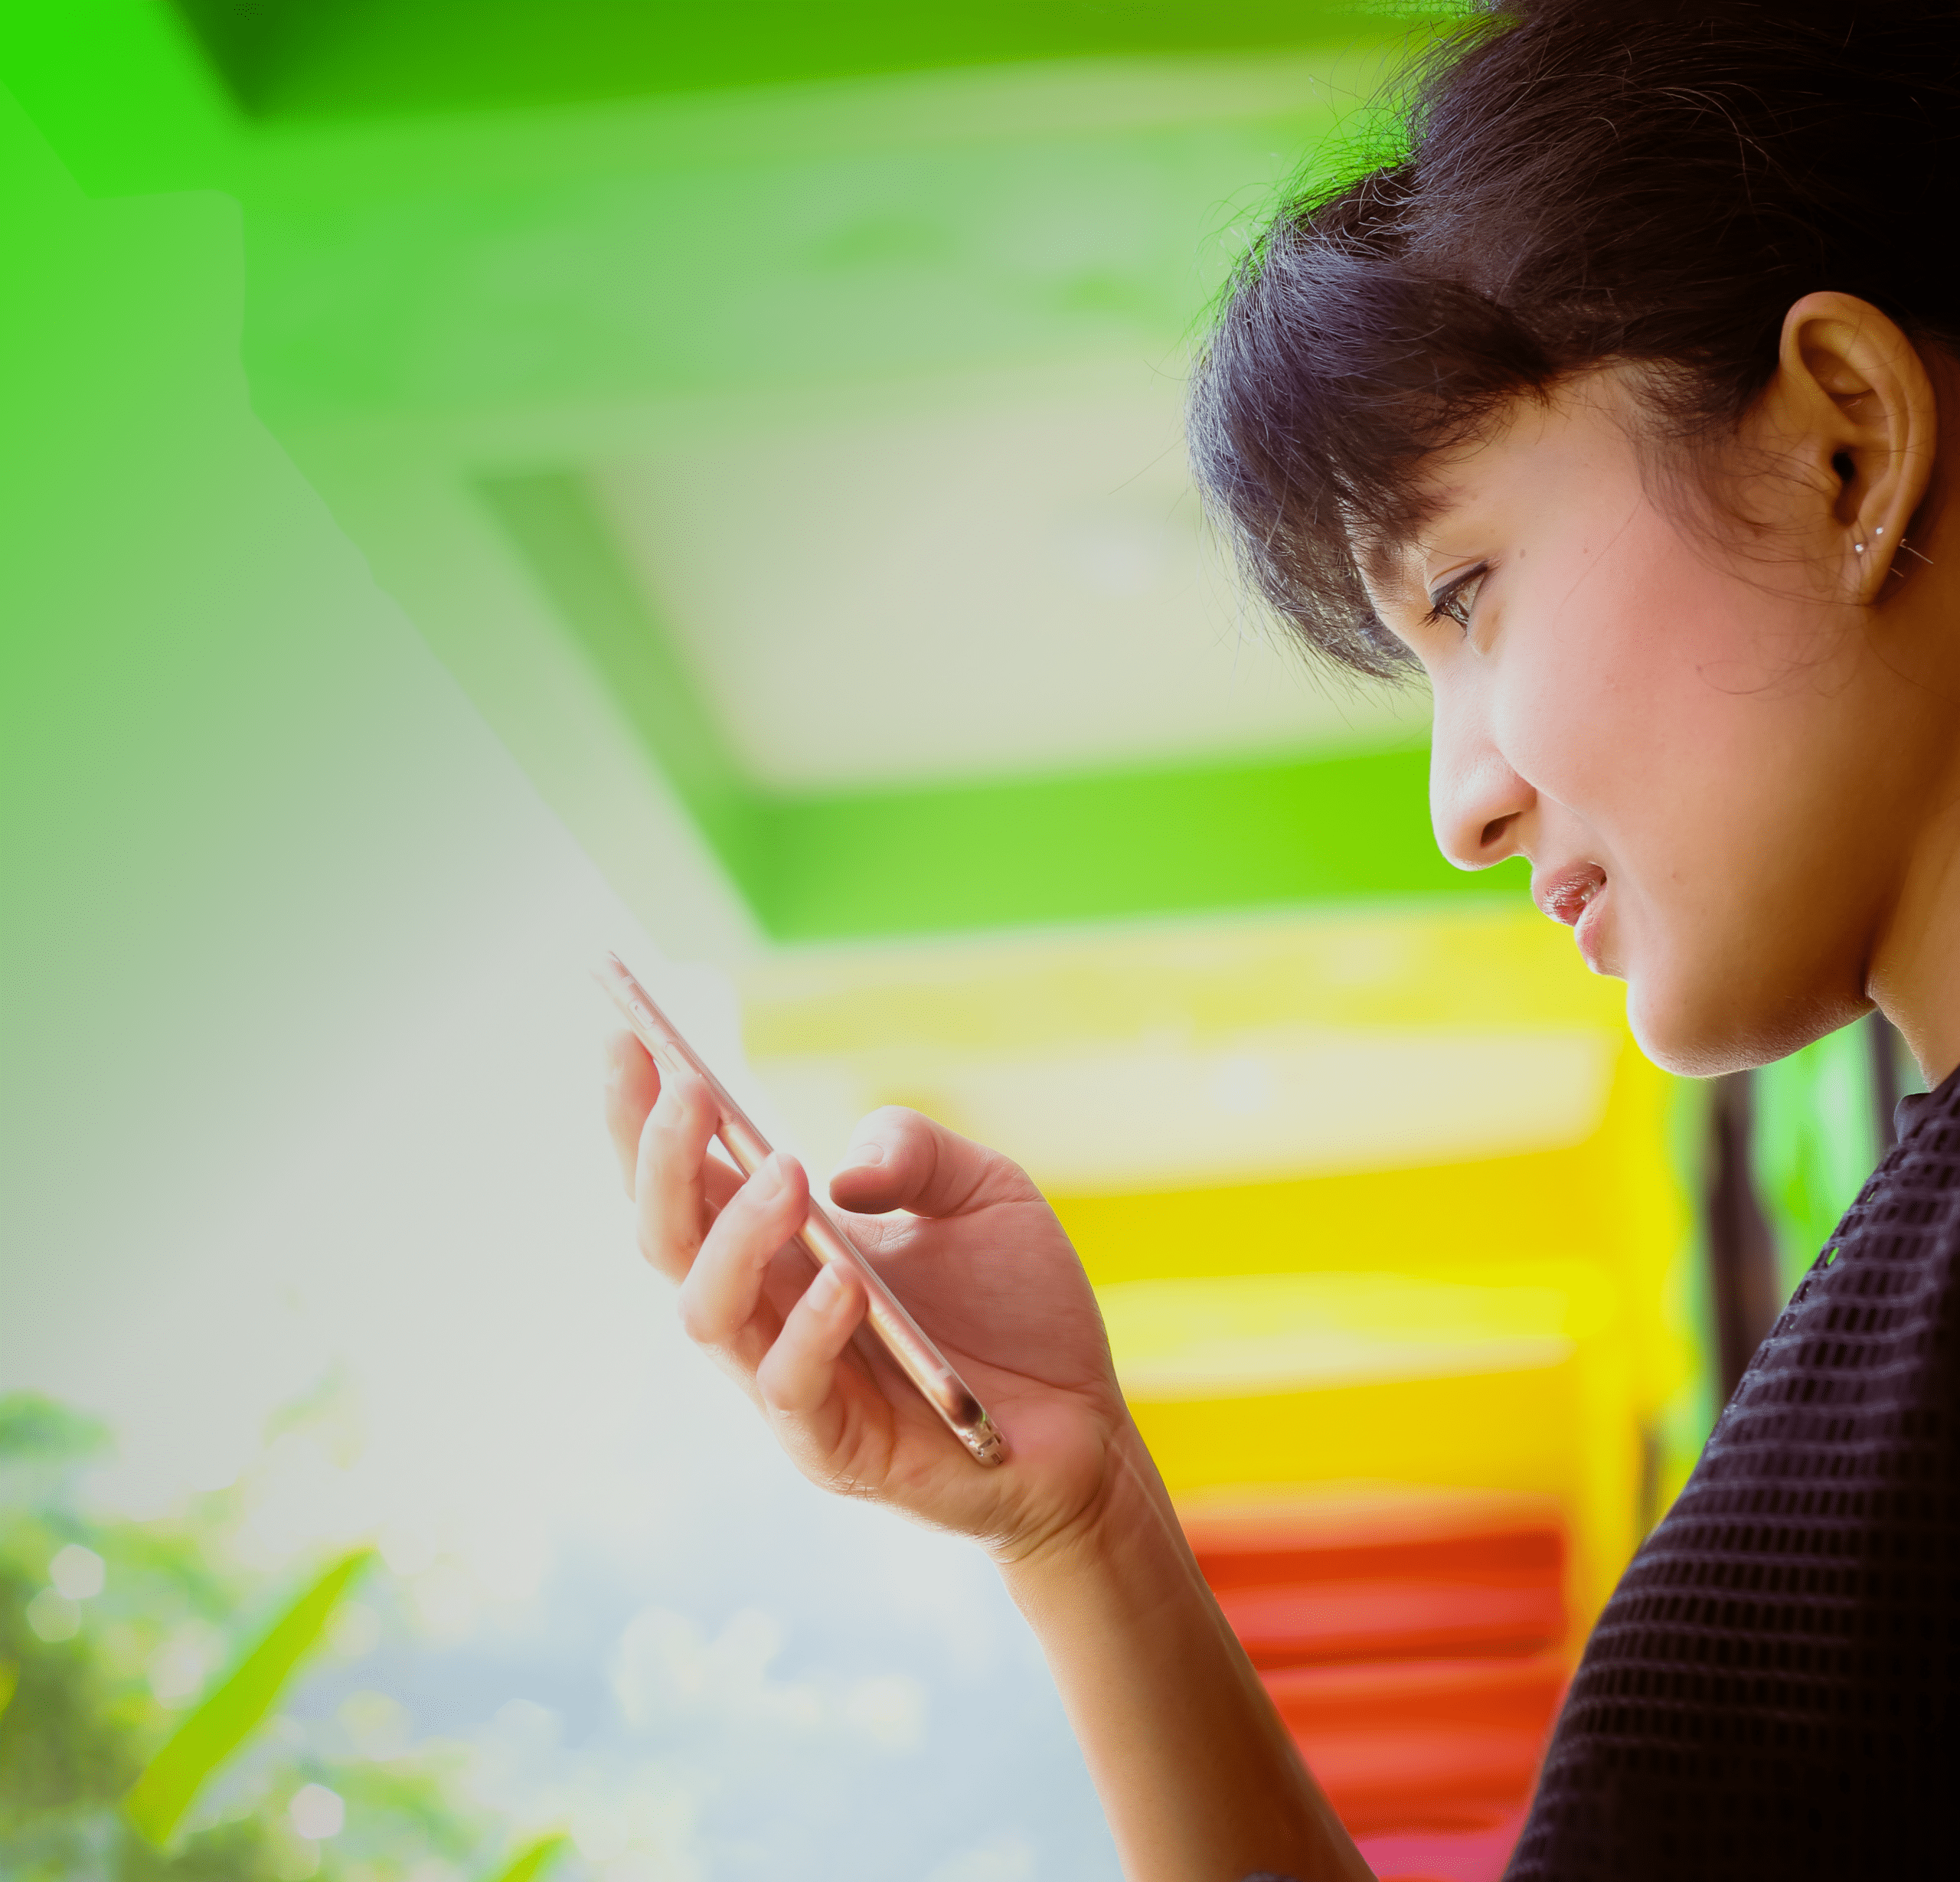 brand-hero_Happy young Asian woman with smartphone_@2x@2x